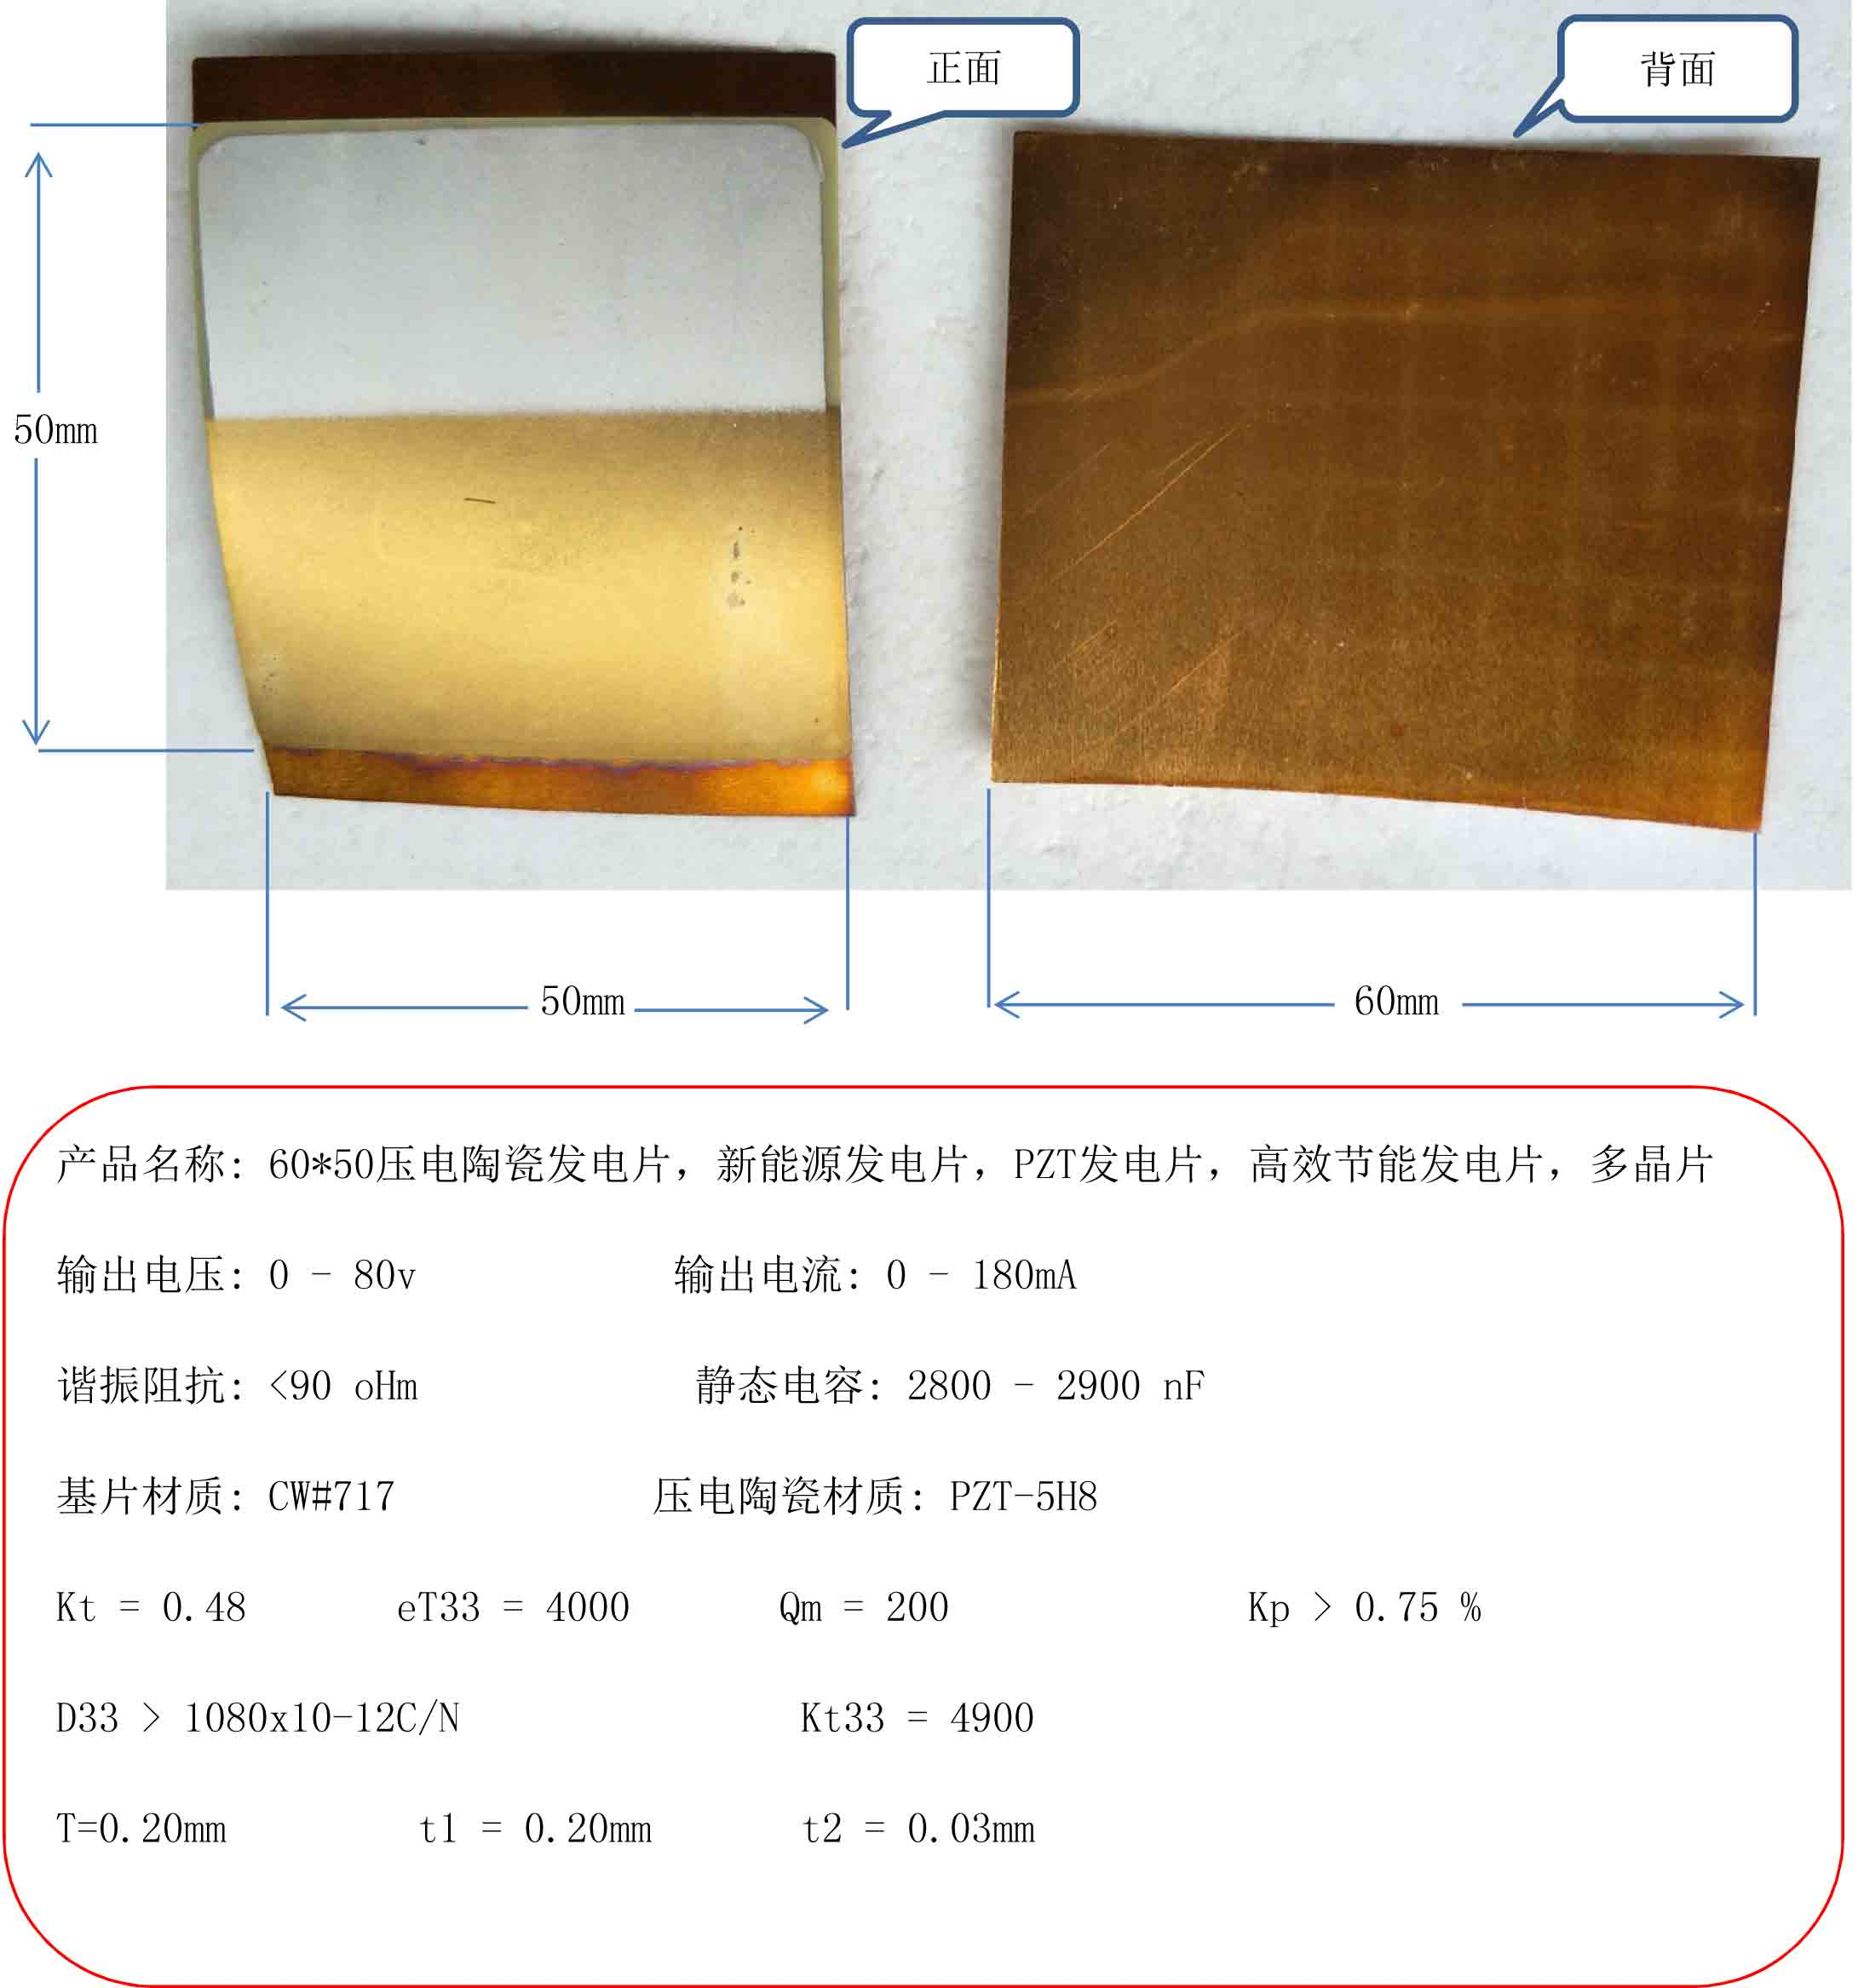 60*50 Piezoelectric Ceramic Power Generation, New Energy Power Generation, PZT Power Generation 21mm piezoelectric ceramic power generation new energy power generation bimorph new material pzt ceramic power generation